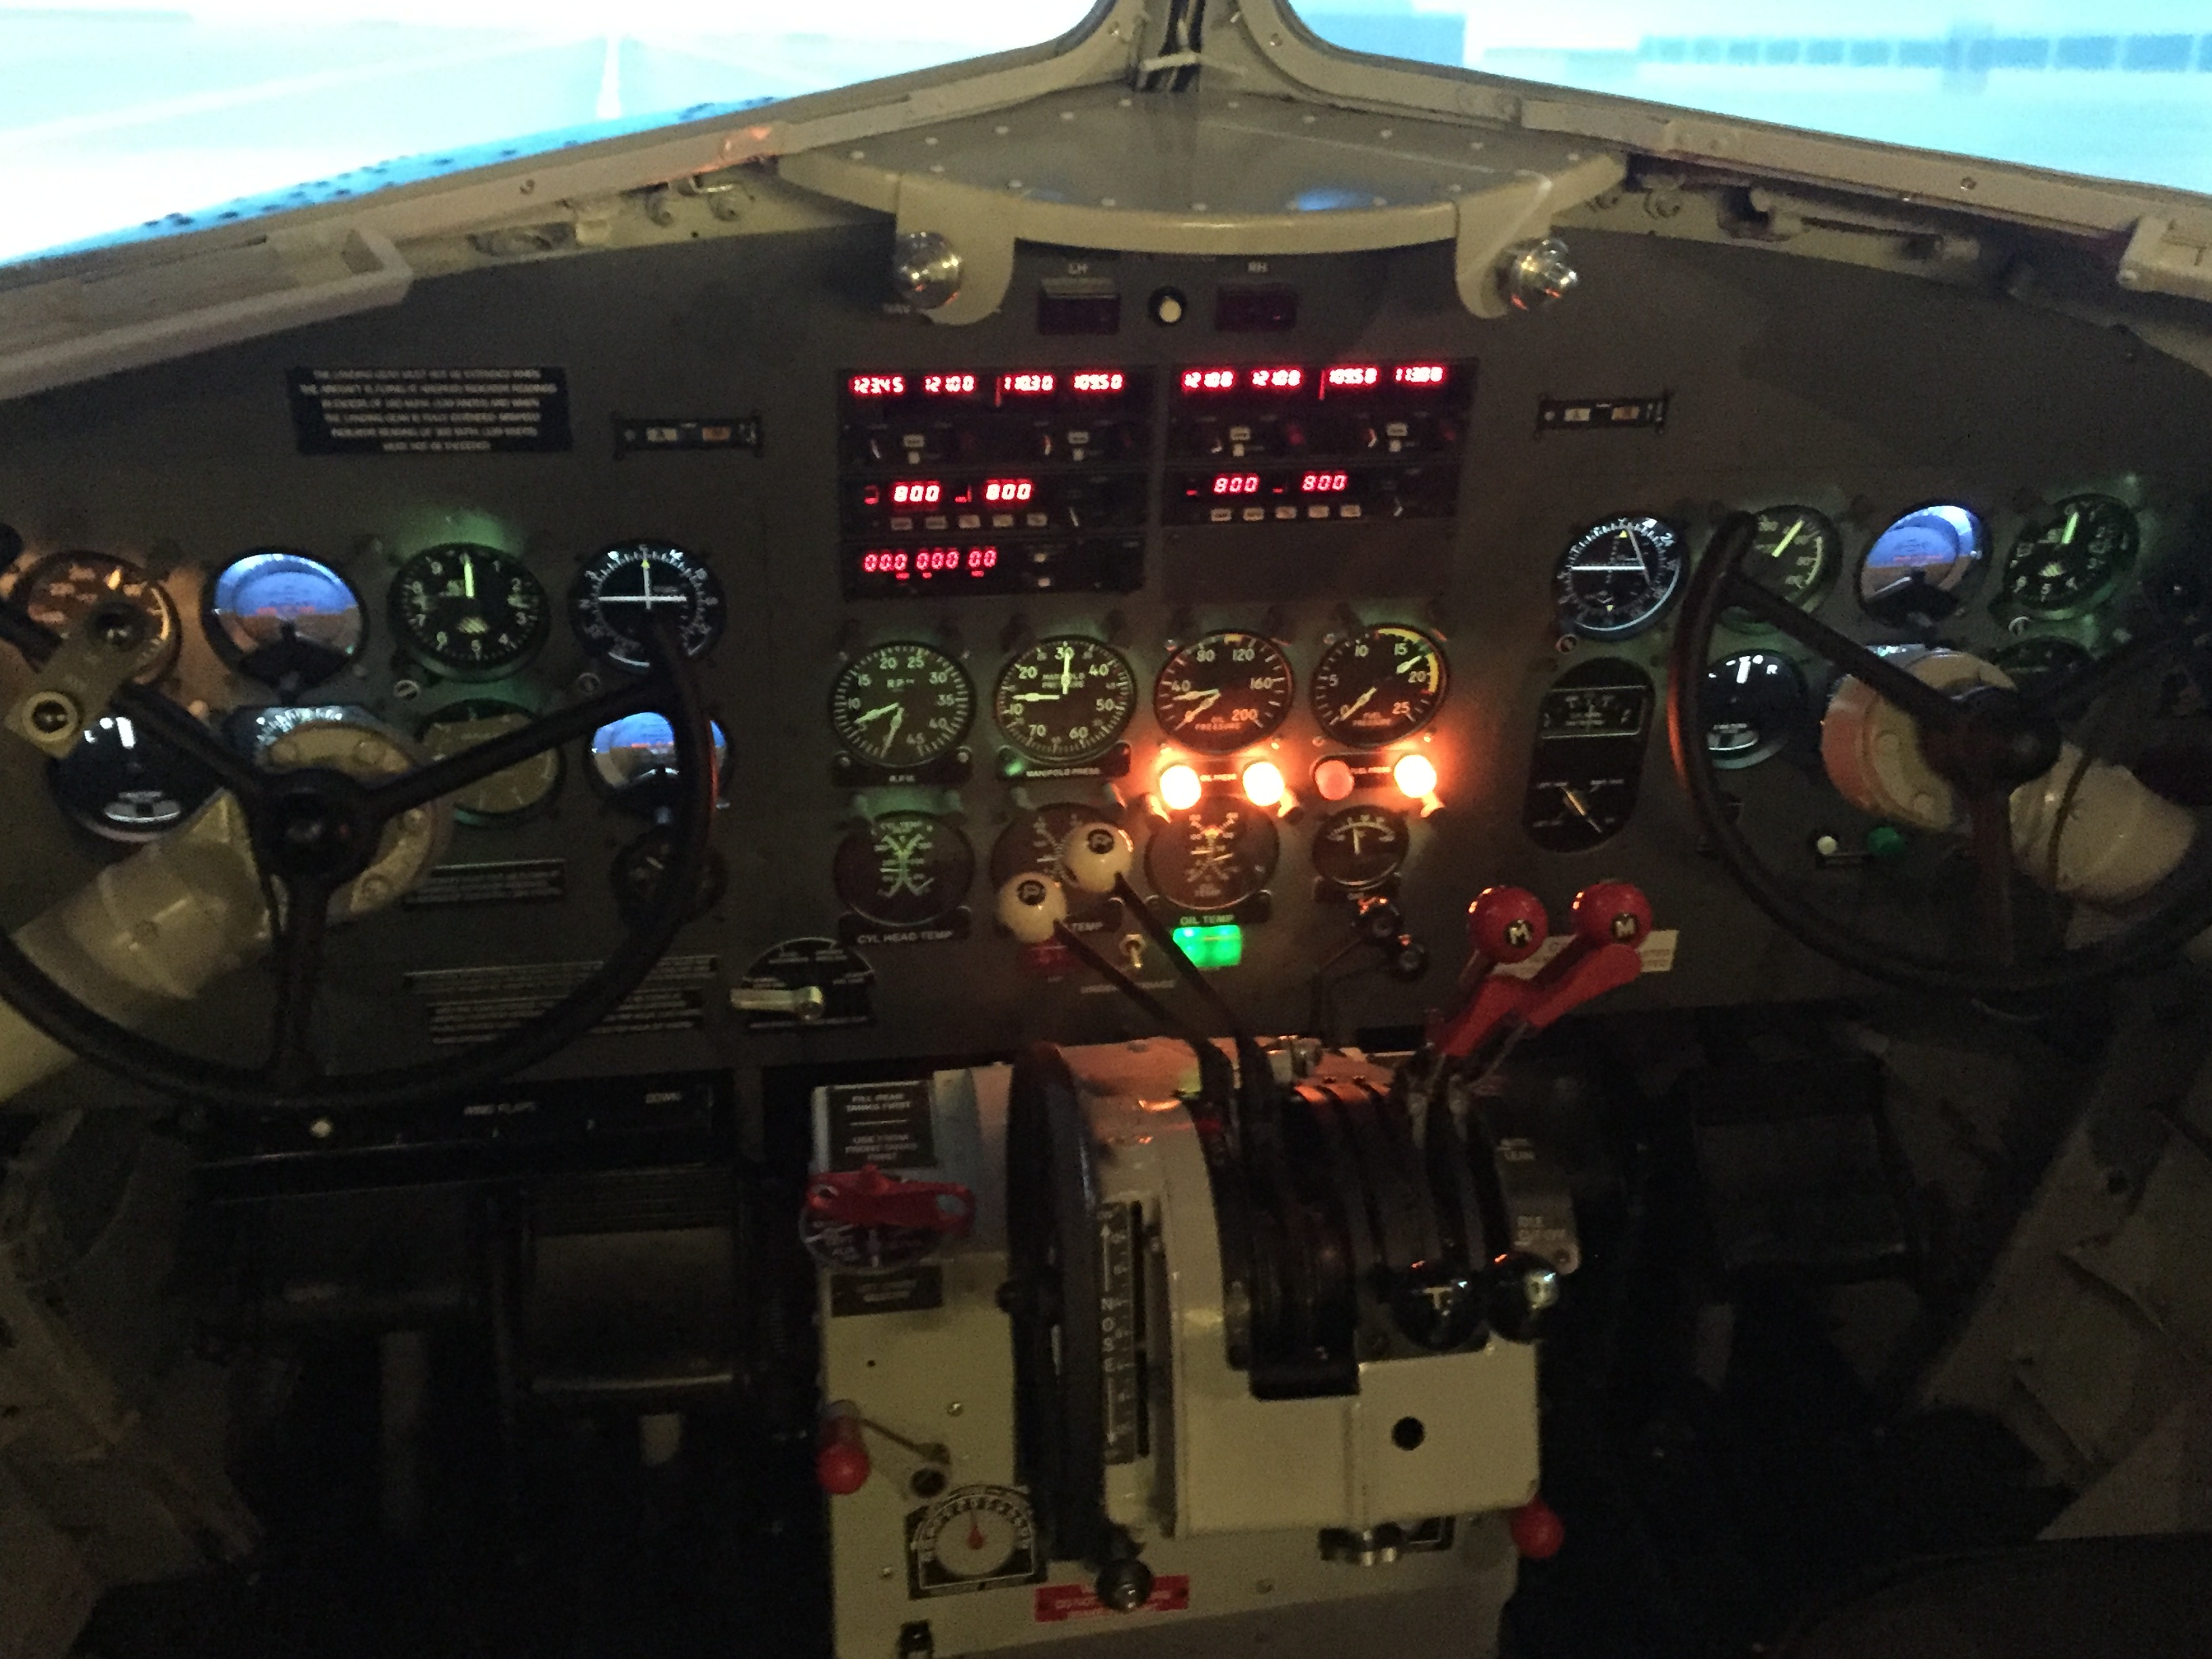 DC-3 simulator in Amsterdam , The Netherlands // Source: Tómas Dagur Helgason